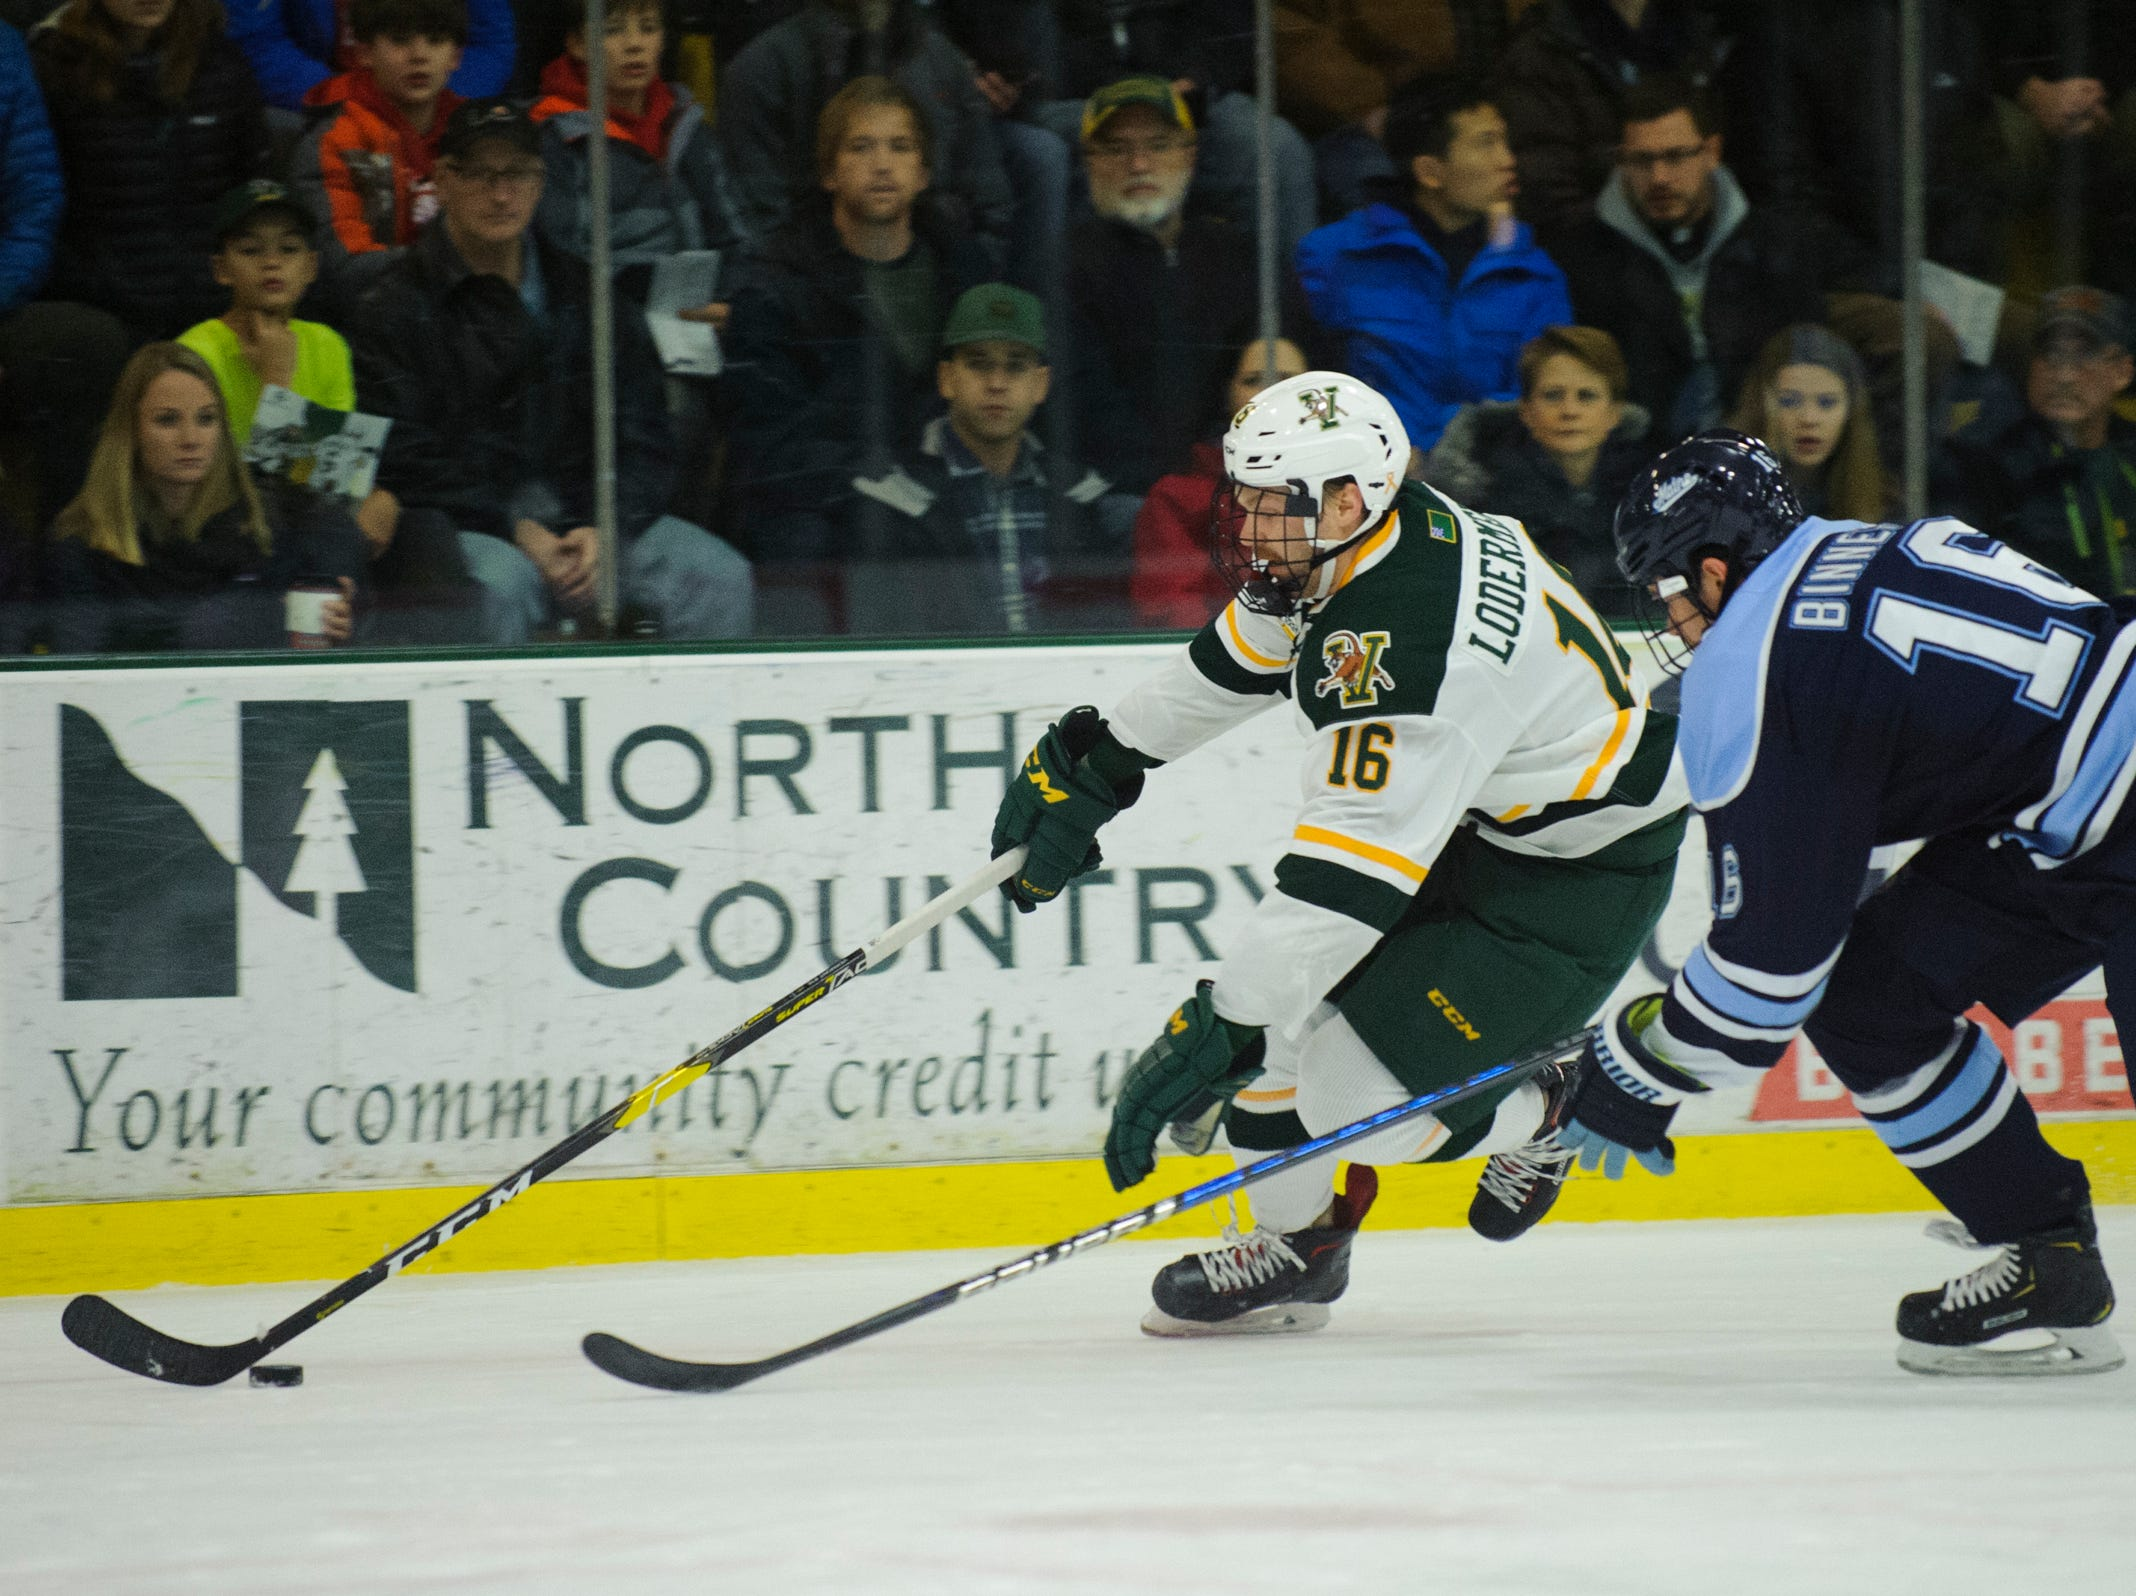 Vermont forward Derek Lodermeier (16) skates with the puck past Maine's Alexis Binner (16) during the men's hockey game between the Mine Black Bears and the Vermont Catamounts at Gutterson Field House on Friday night November 30, 2018 in Burlington.